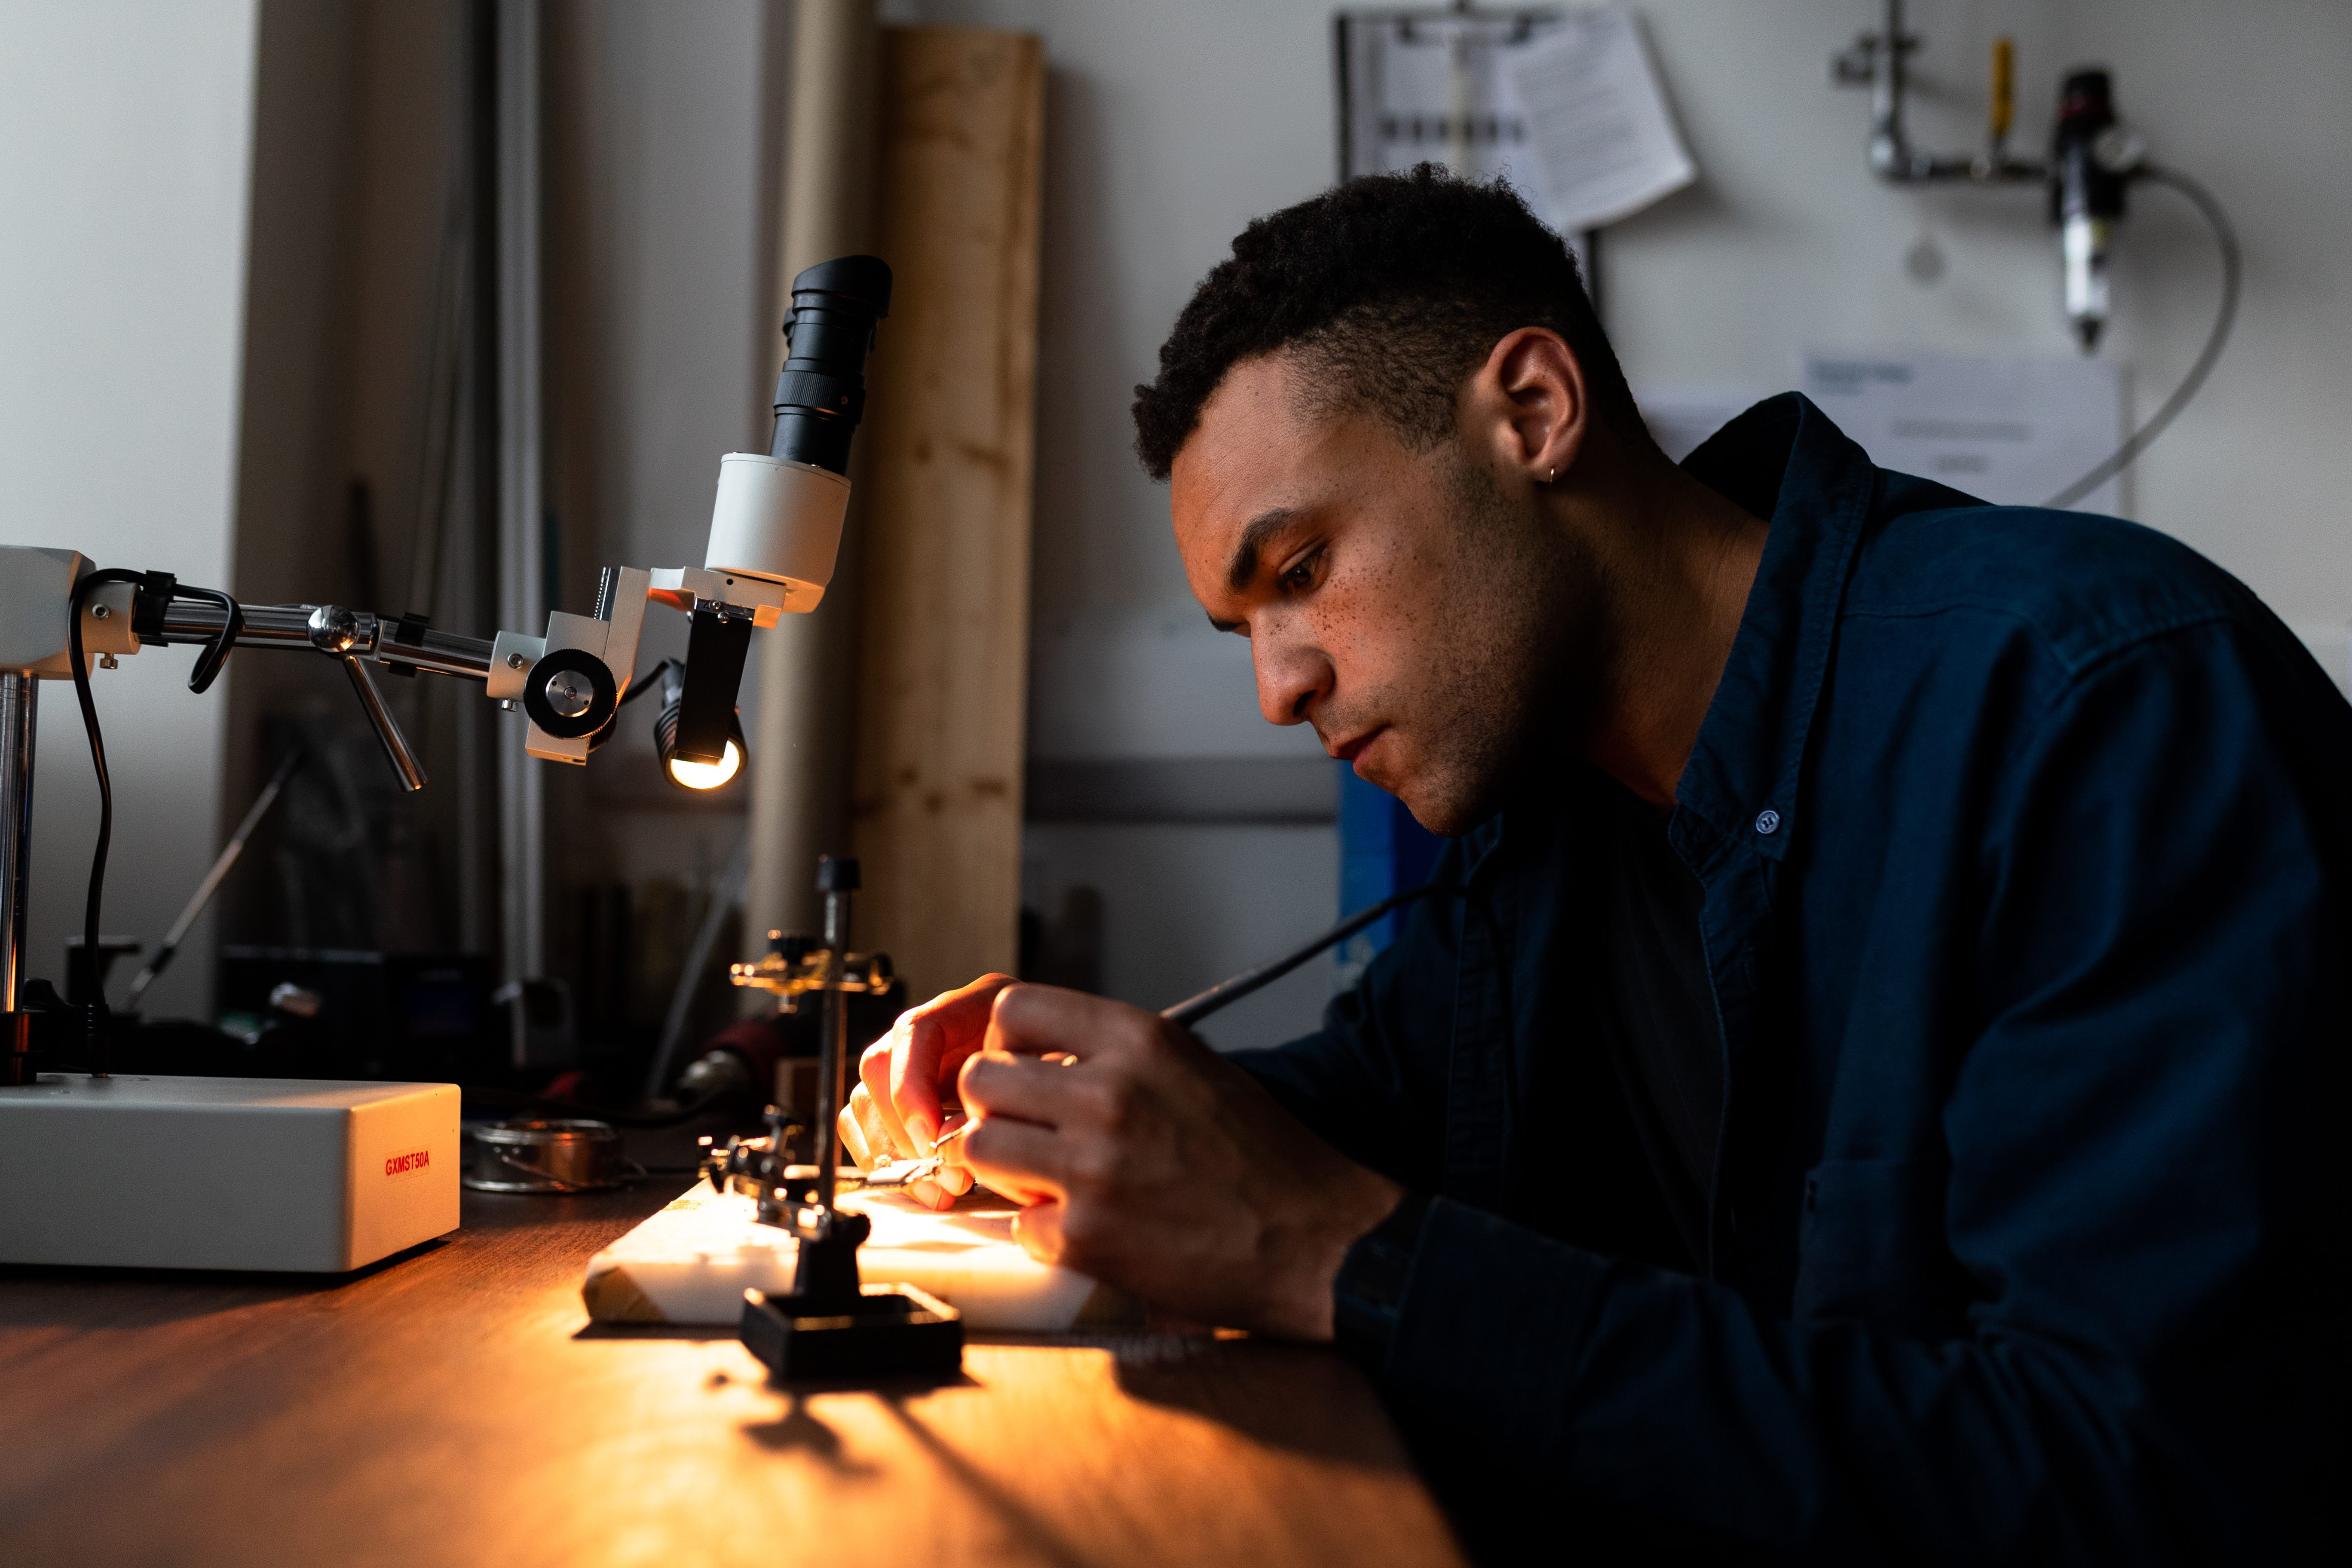 Male mechanical engineer solders parts for prosthetic limbs